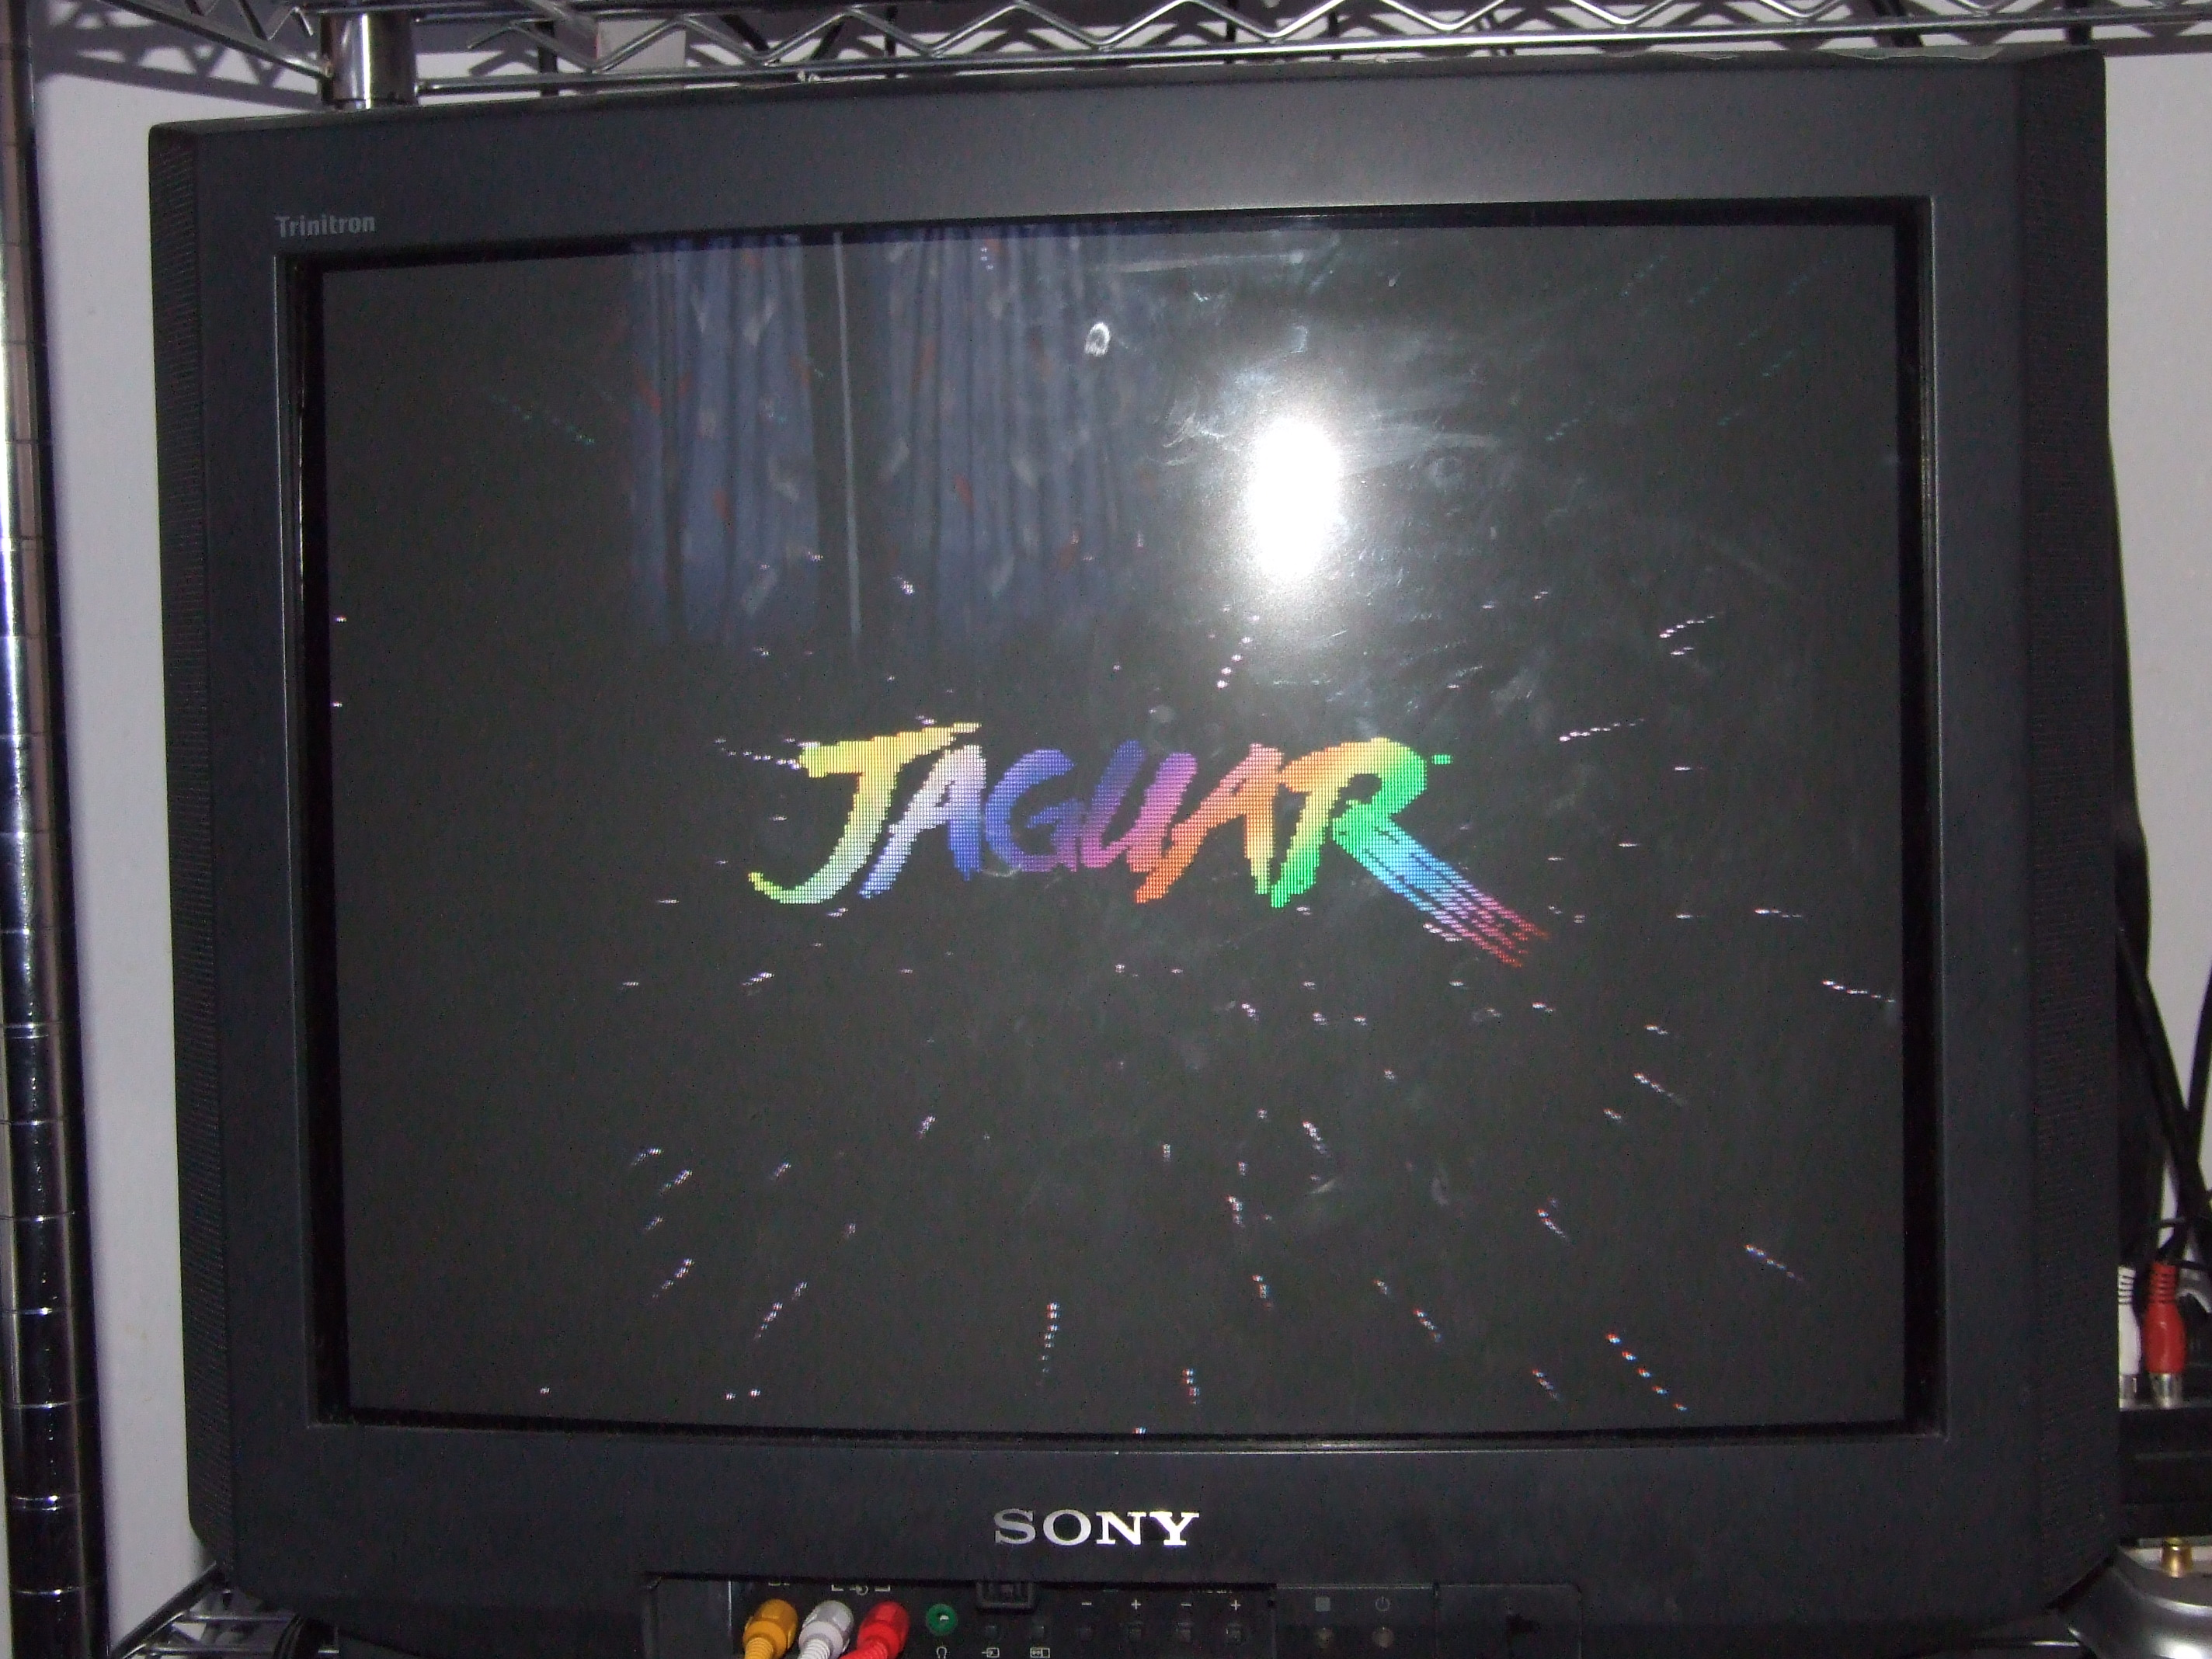 A photo of the TV while booting up the Jaguar+CD